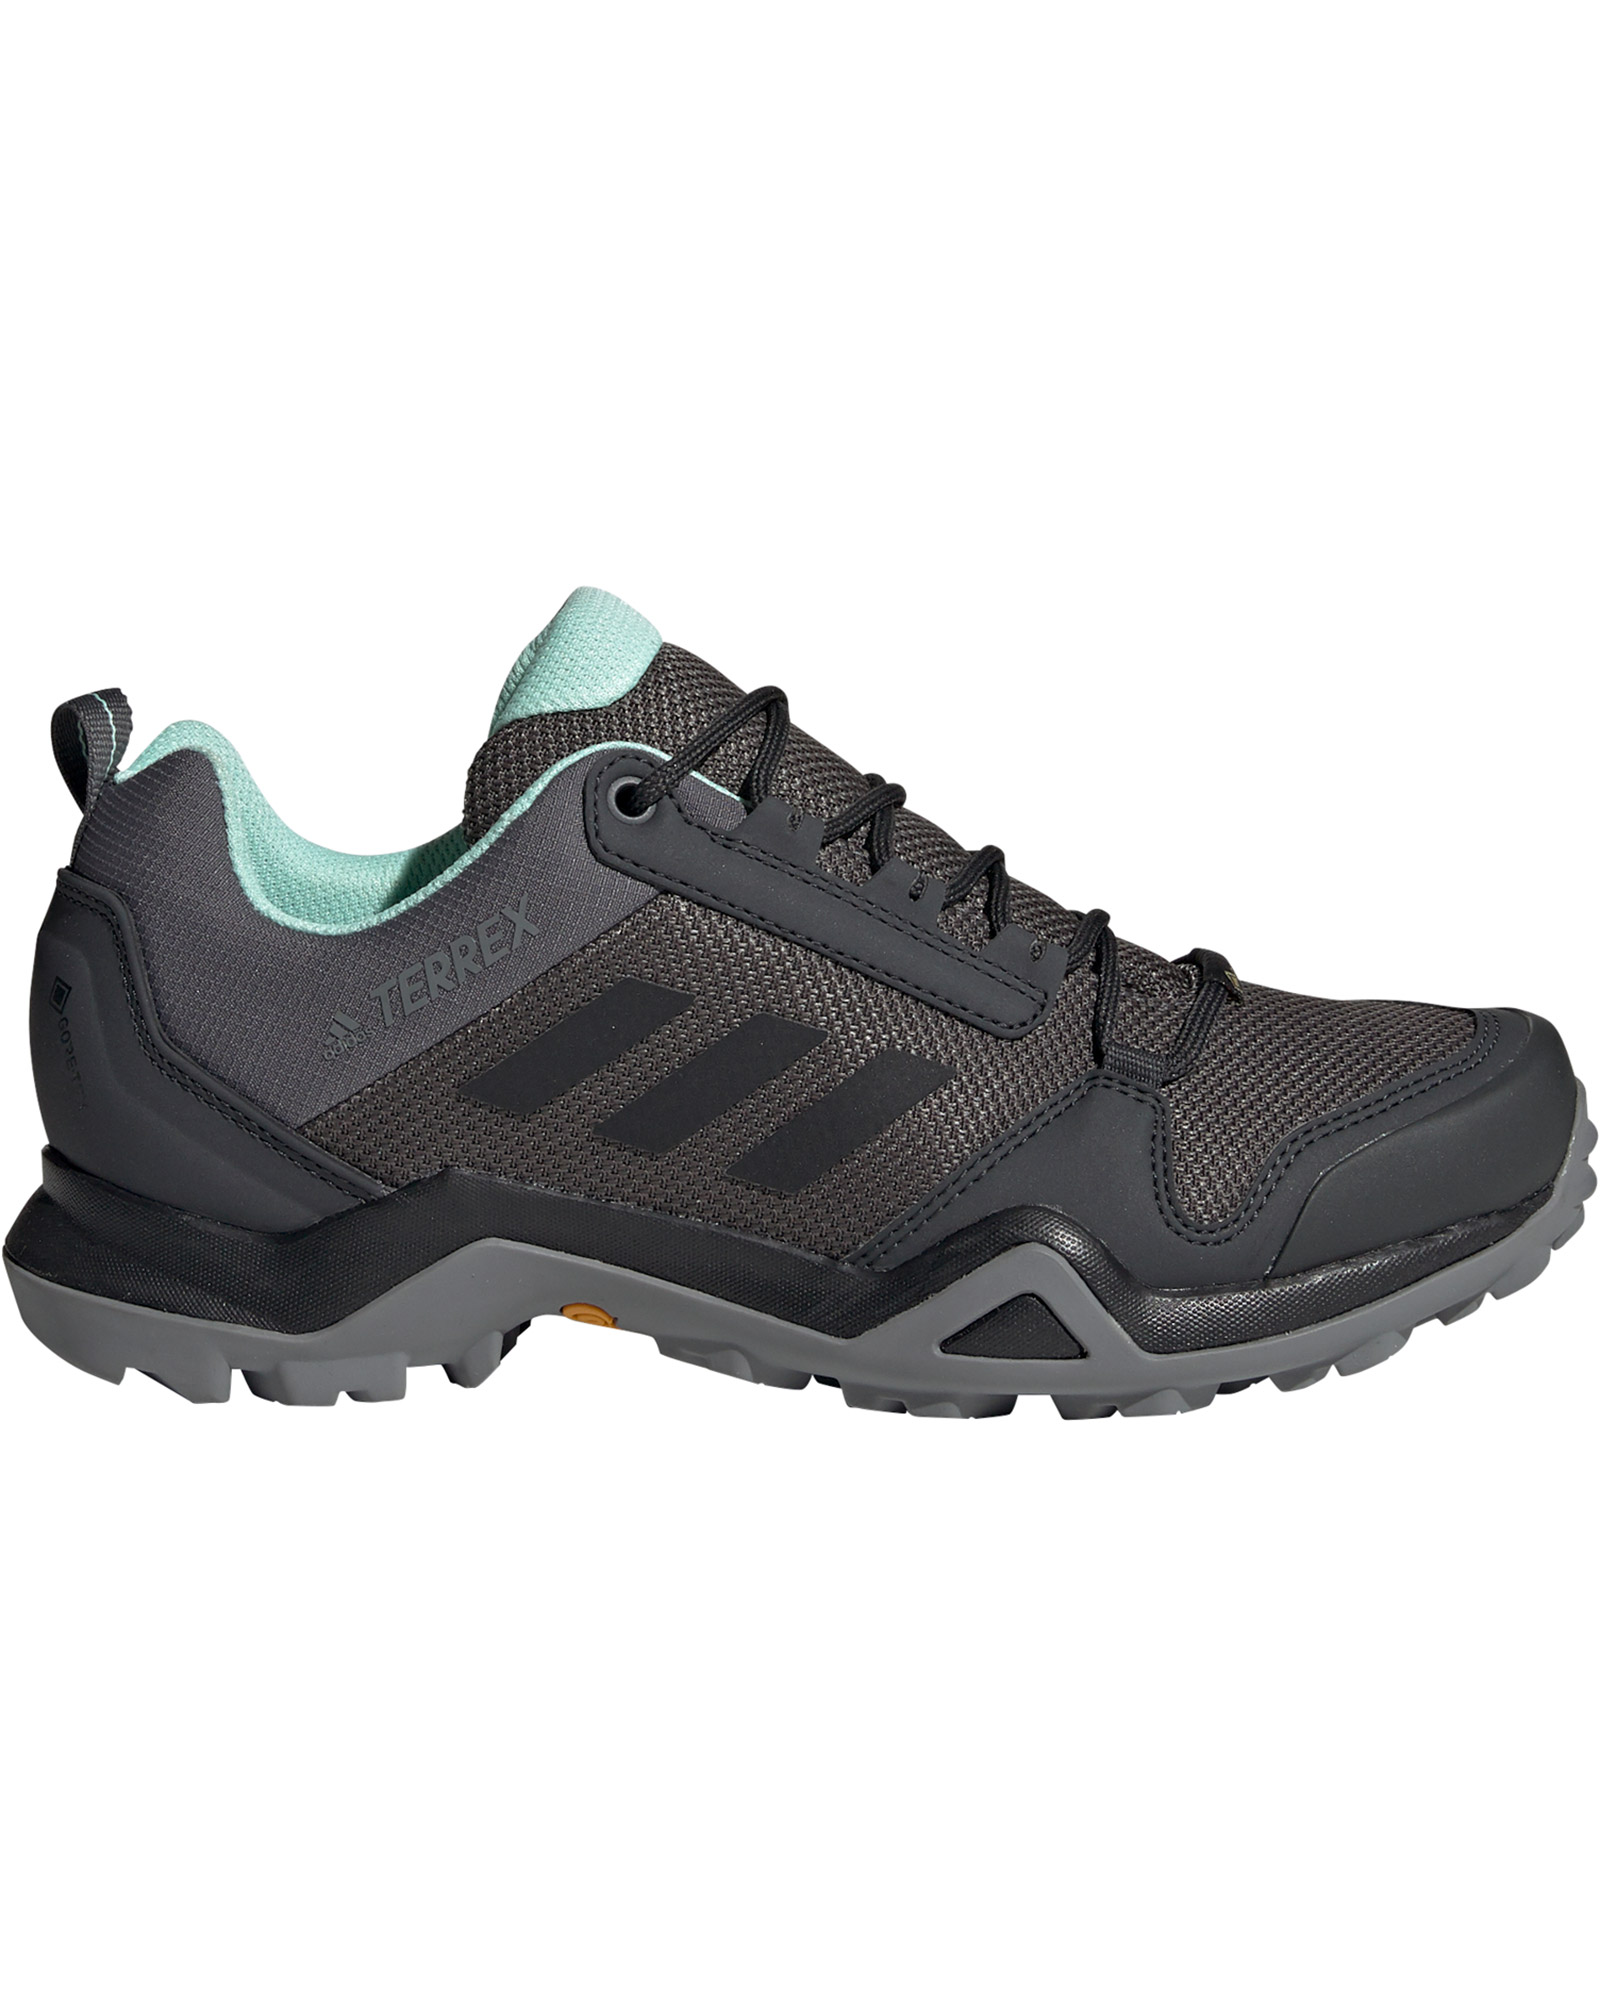 Adidas Terrex Women's Terrex AX3 GORE-TEX Walking Shoes 0